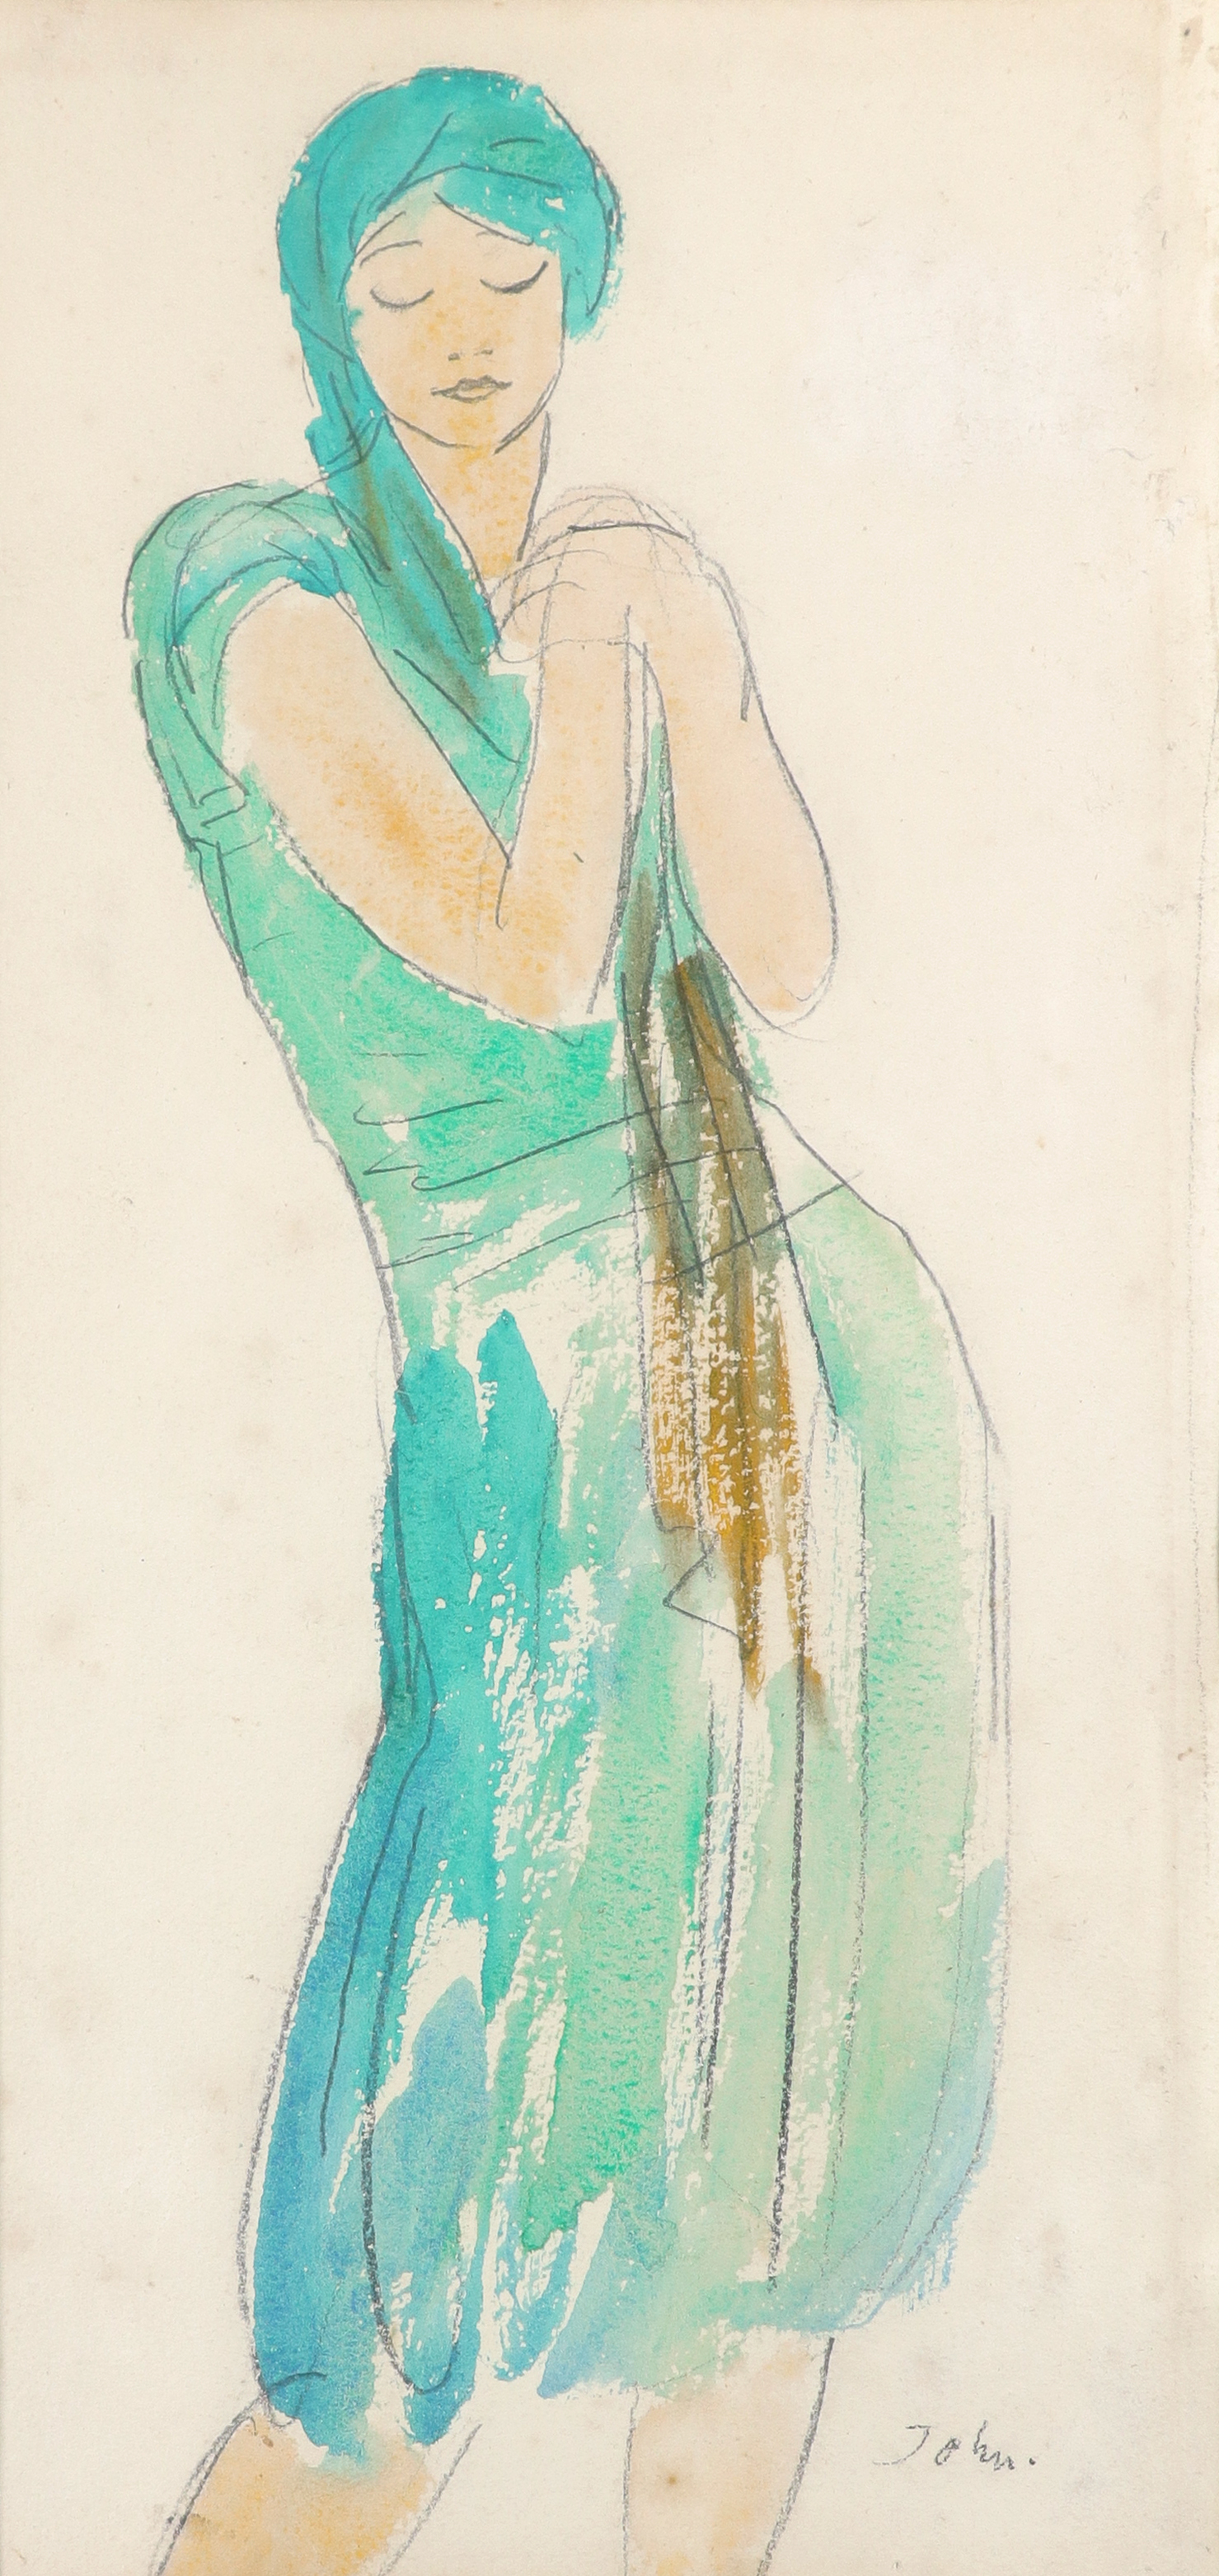 ‡Augustus John OM,RA (1878-1961) Study of a dancing girl Signed John (lower right) Watercolour and